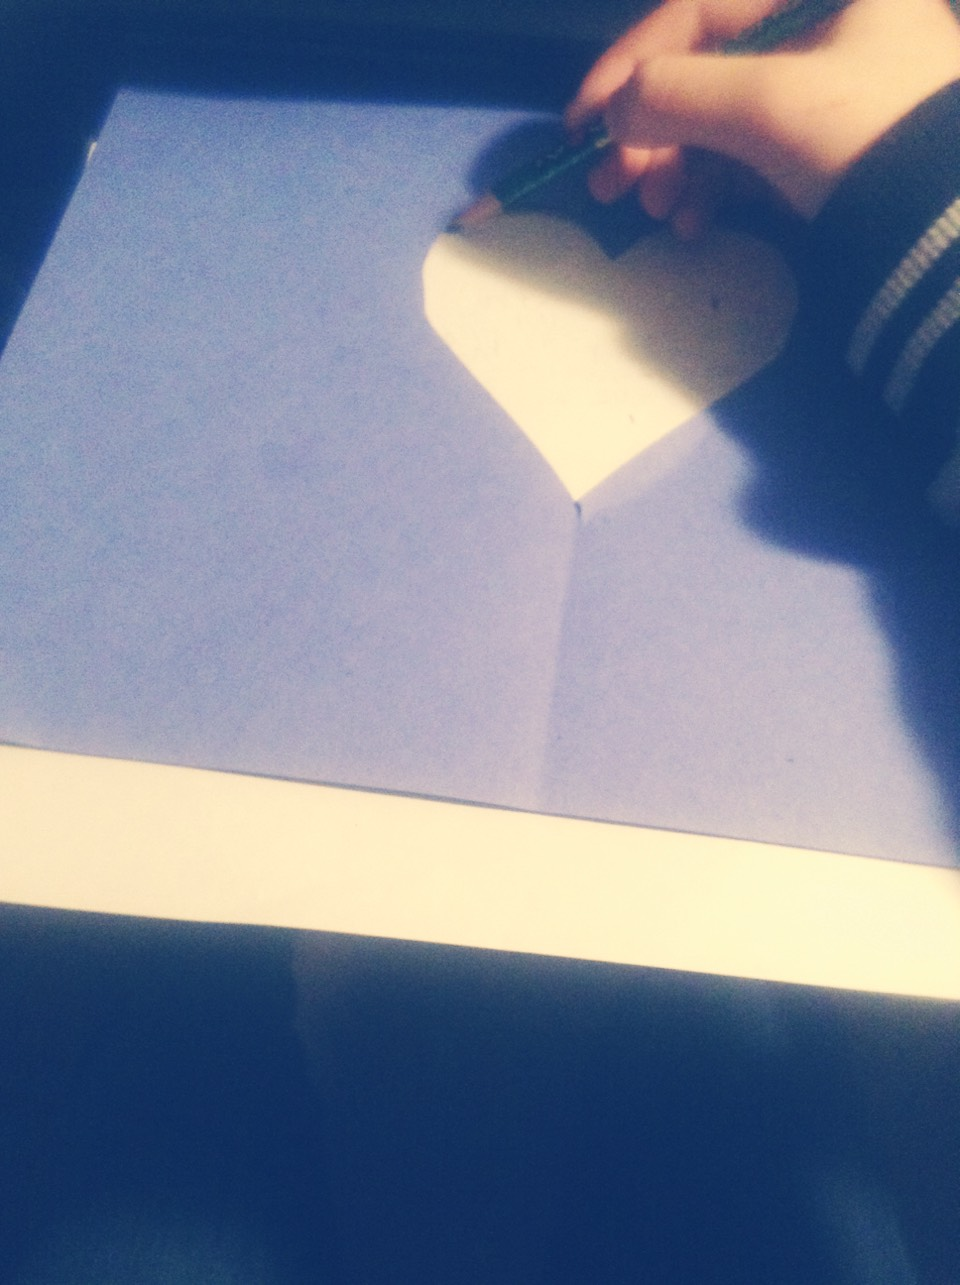 Cut out a heart shape on one piece of paper. Use that as a tracer and place on another paper. Write something cute and special, take off the first layer and viola!... A cute note in the shape of a heart